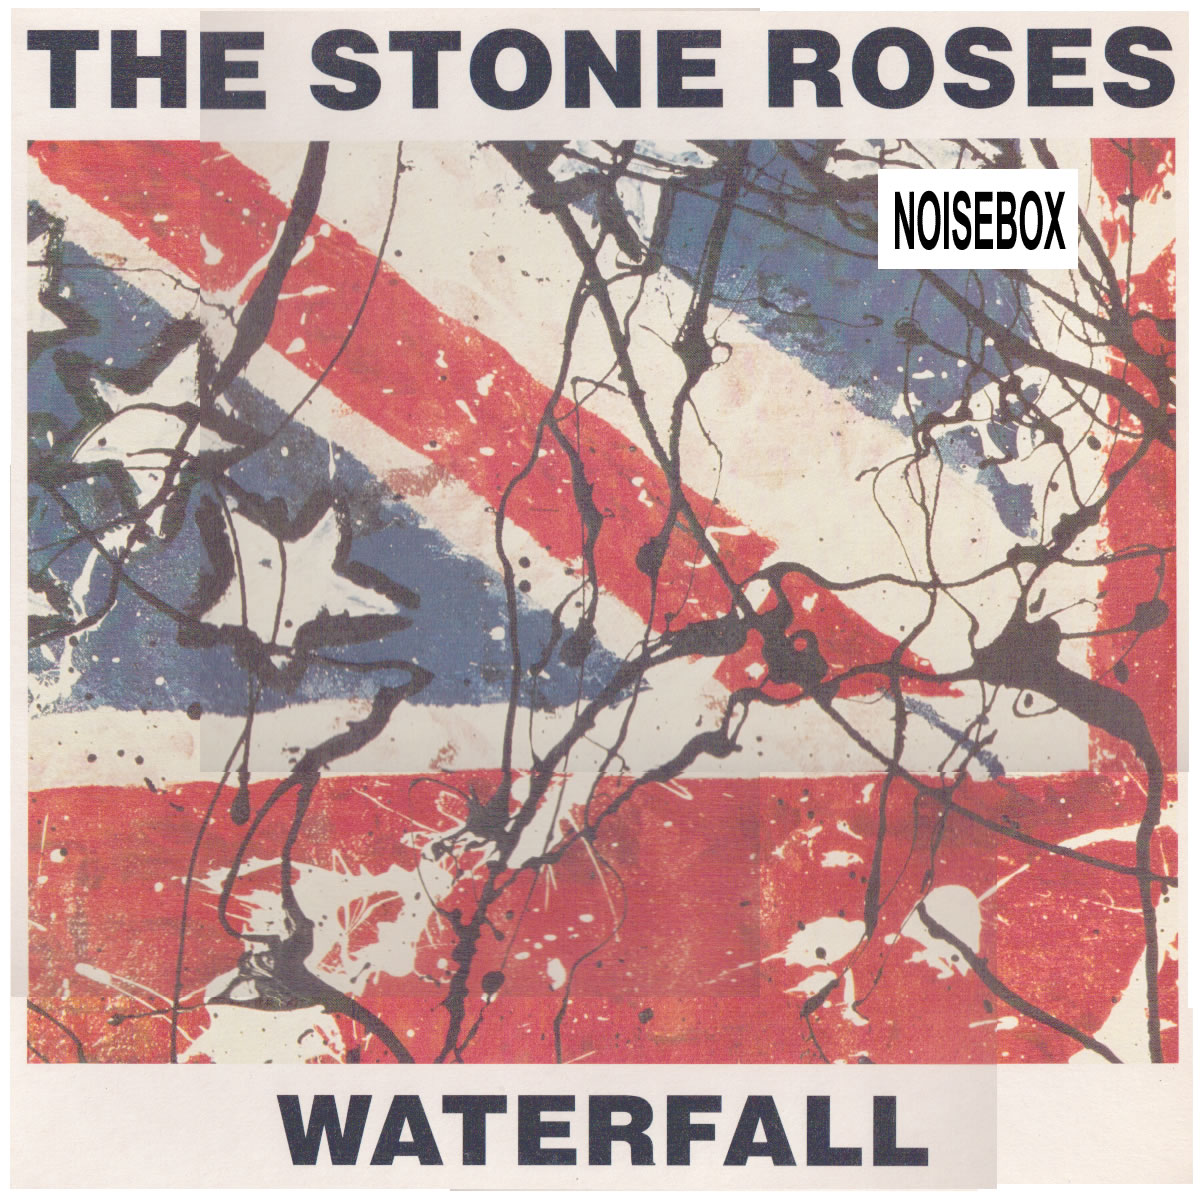 NOISEBOX: Stone Roses - Waterfall EP